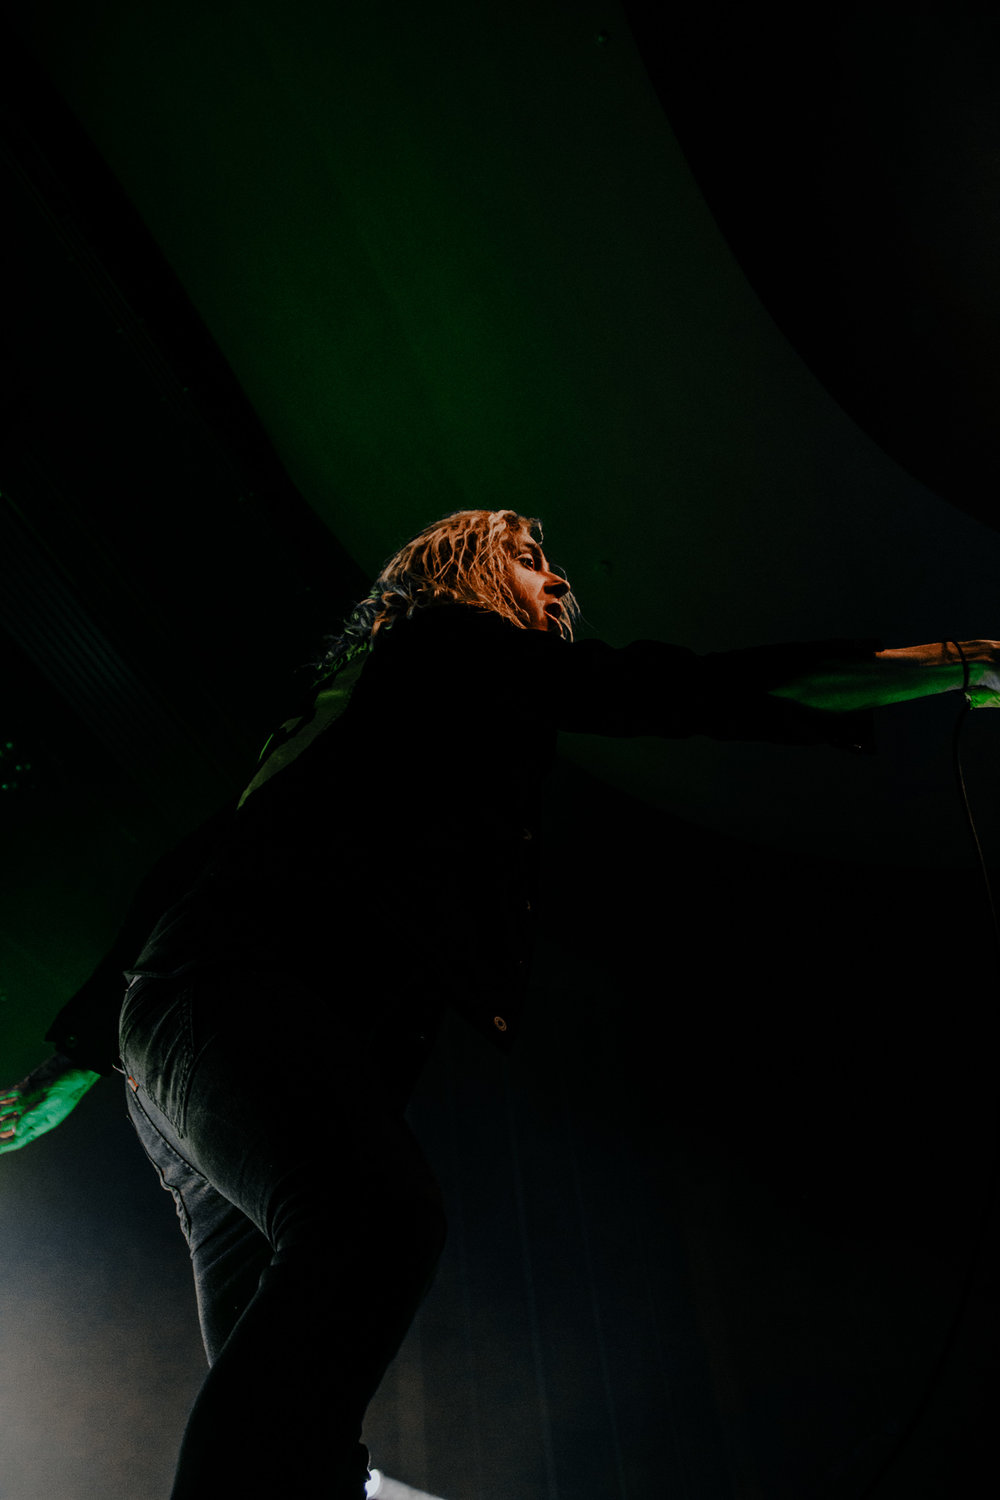 Spencer Chamberlain of Underoath at the Vogue Theatre on November 19th.   This photo of Spencer is my favourite photo I have taken so far. Underoath put on such a great performance and I hope to shoot photos of them again in the future.